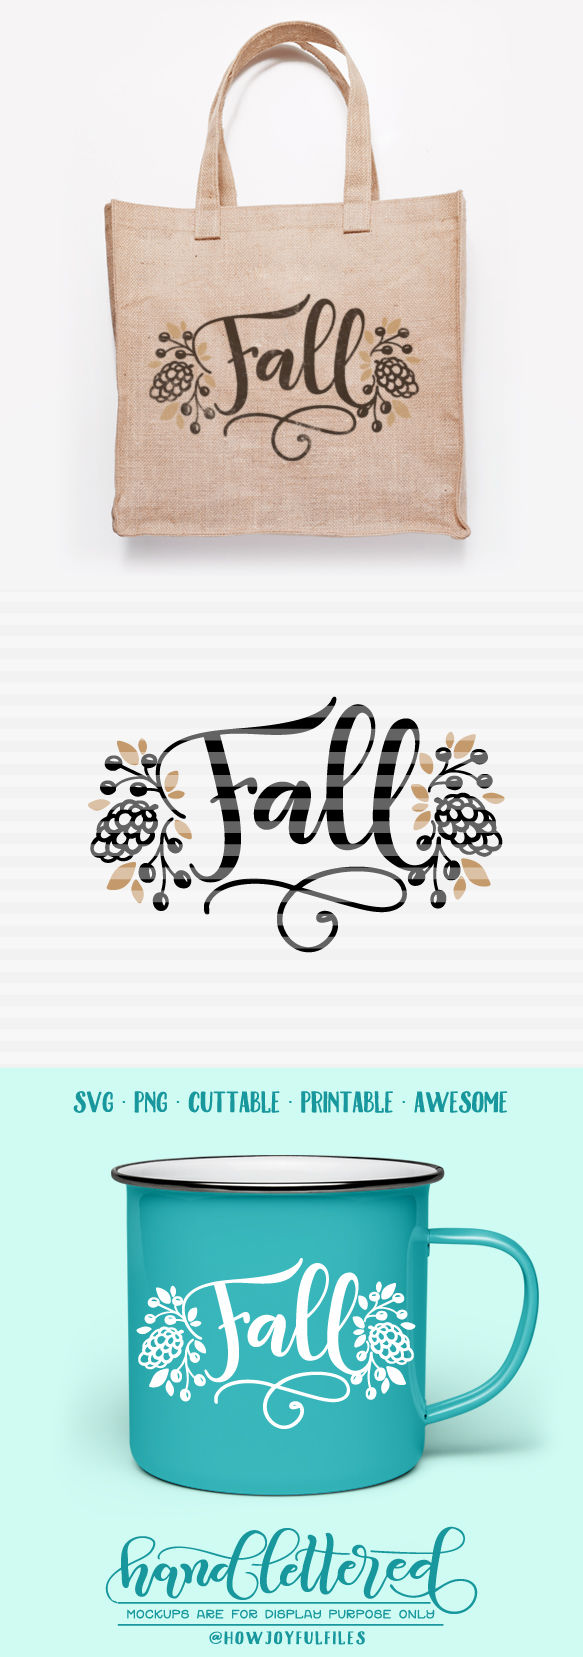 Fall Autumn Svg Dxf Pdf Files Hand Drawn Lettered Cut File Graphic Overlay By Howjoyful Files Thehungryjpeg Com